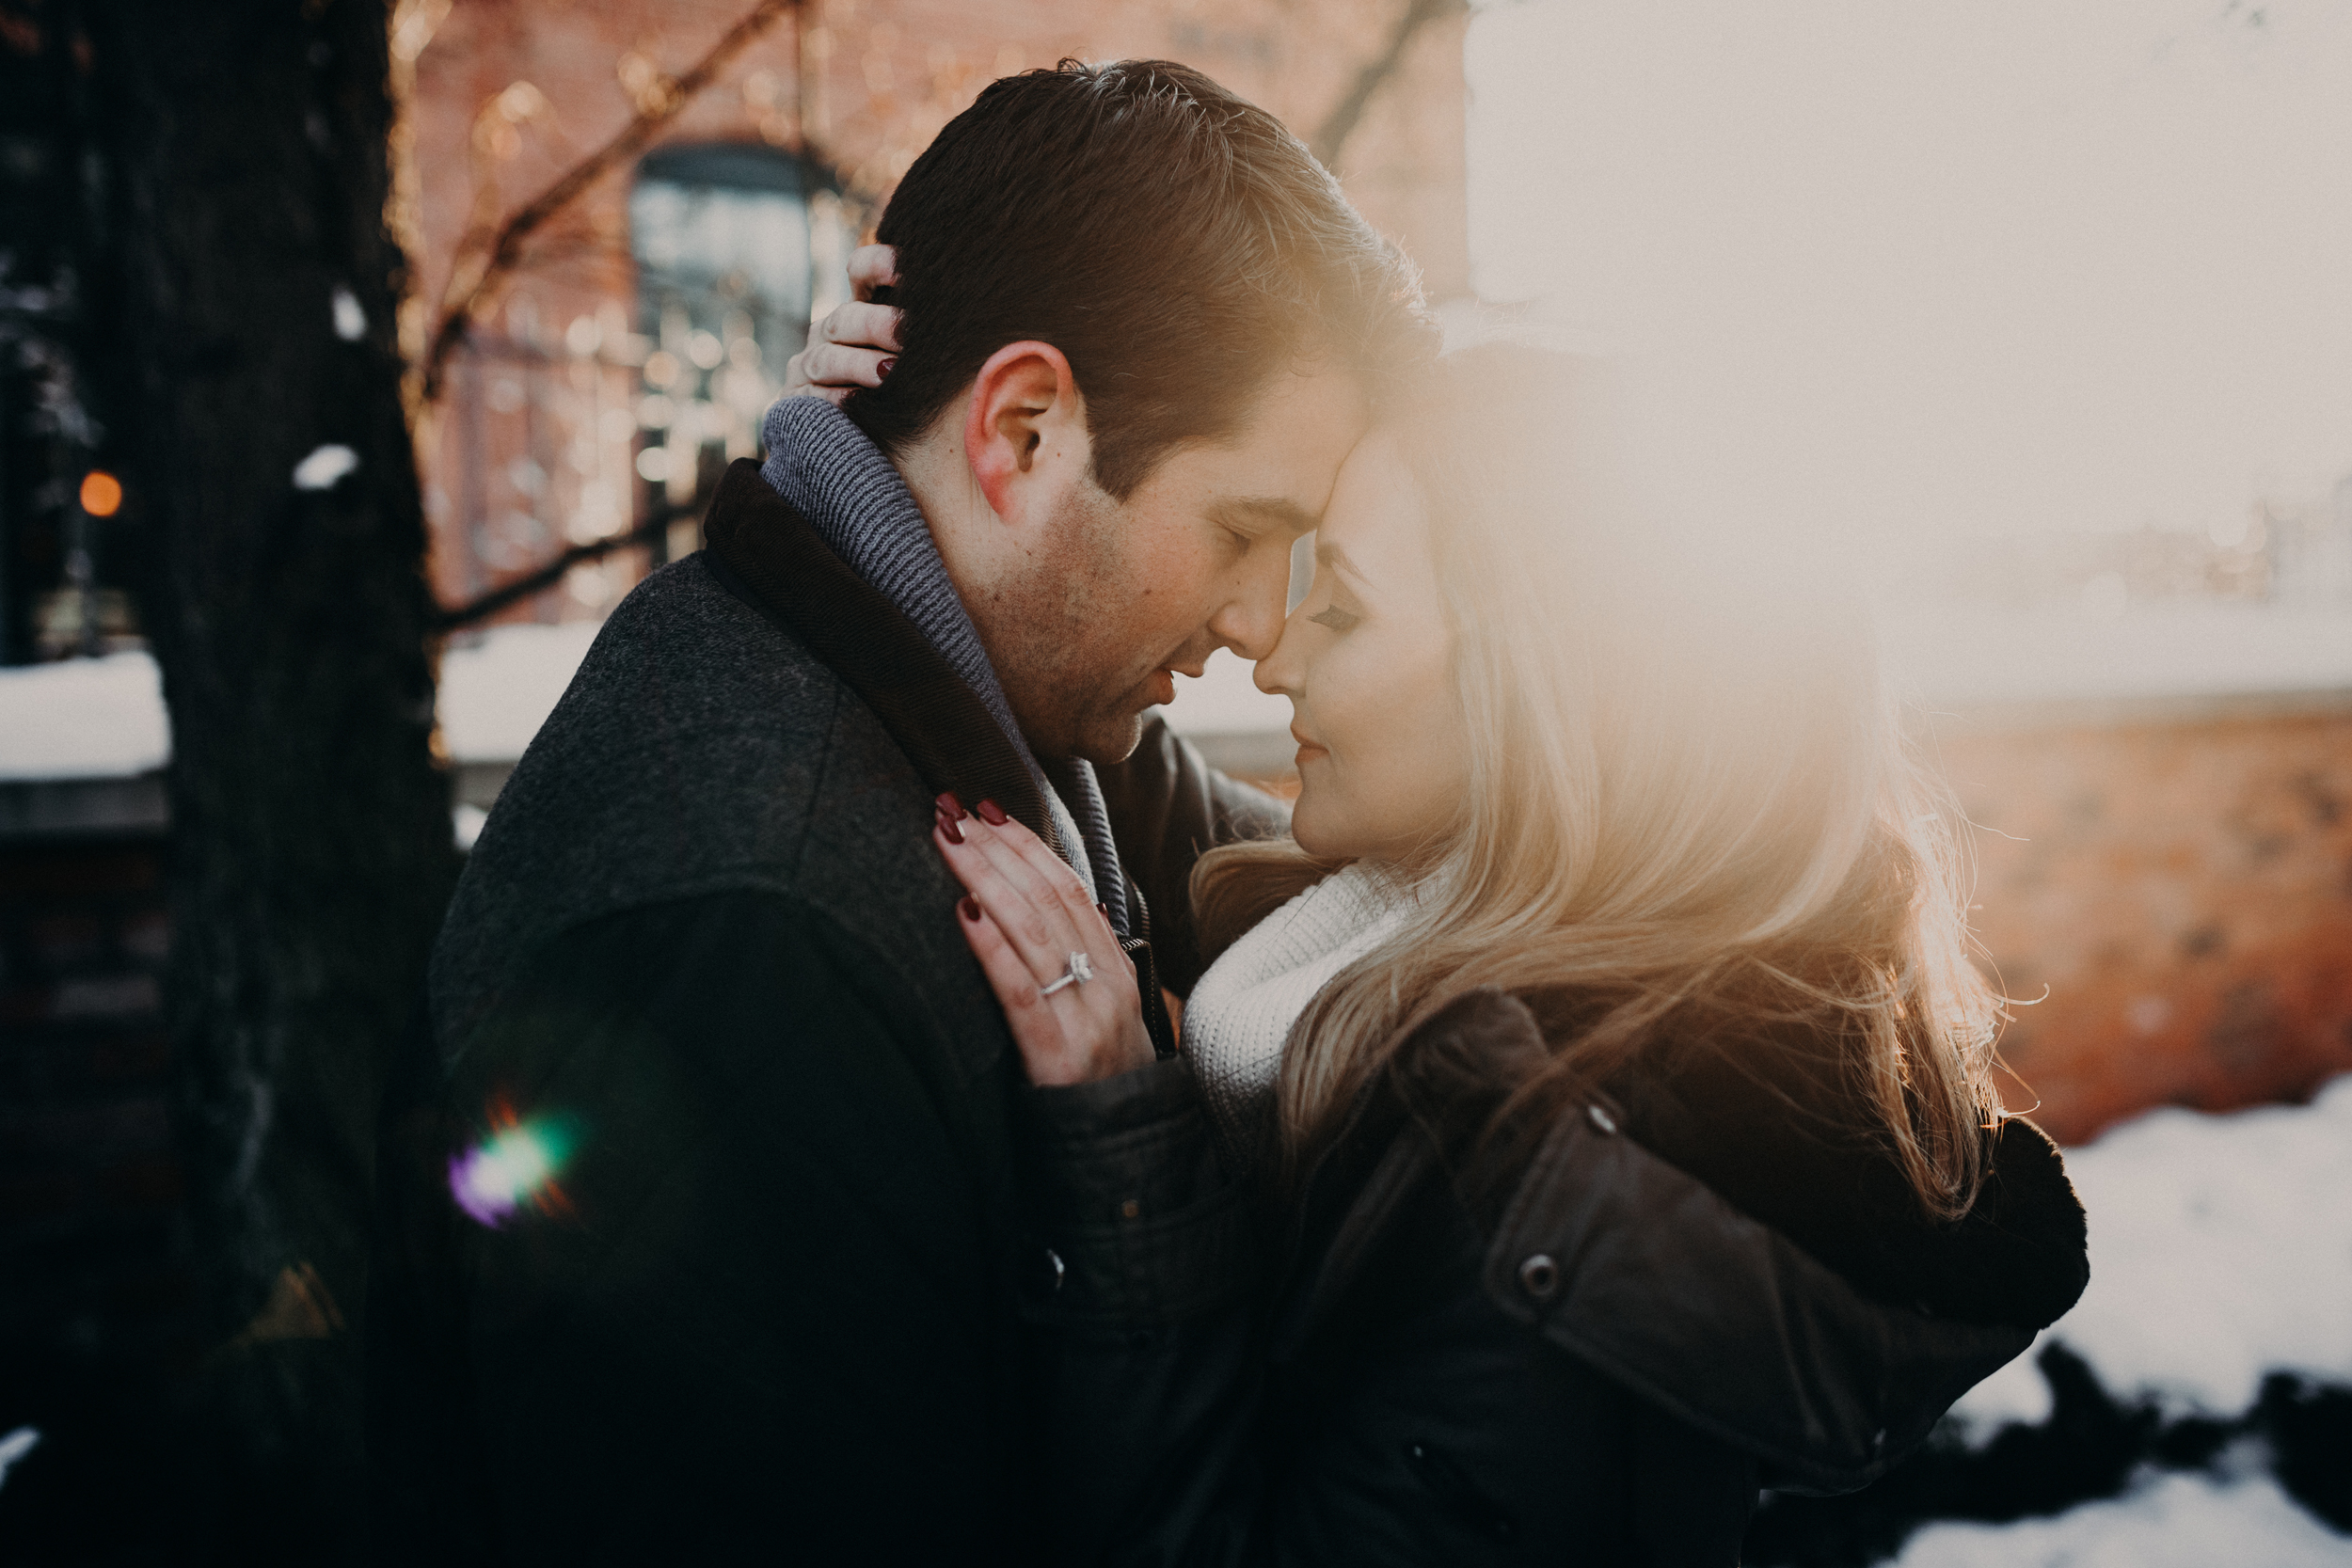 (134) Maria + Vince (Engagement).jpg